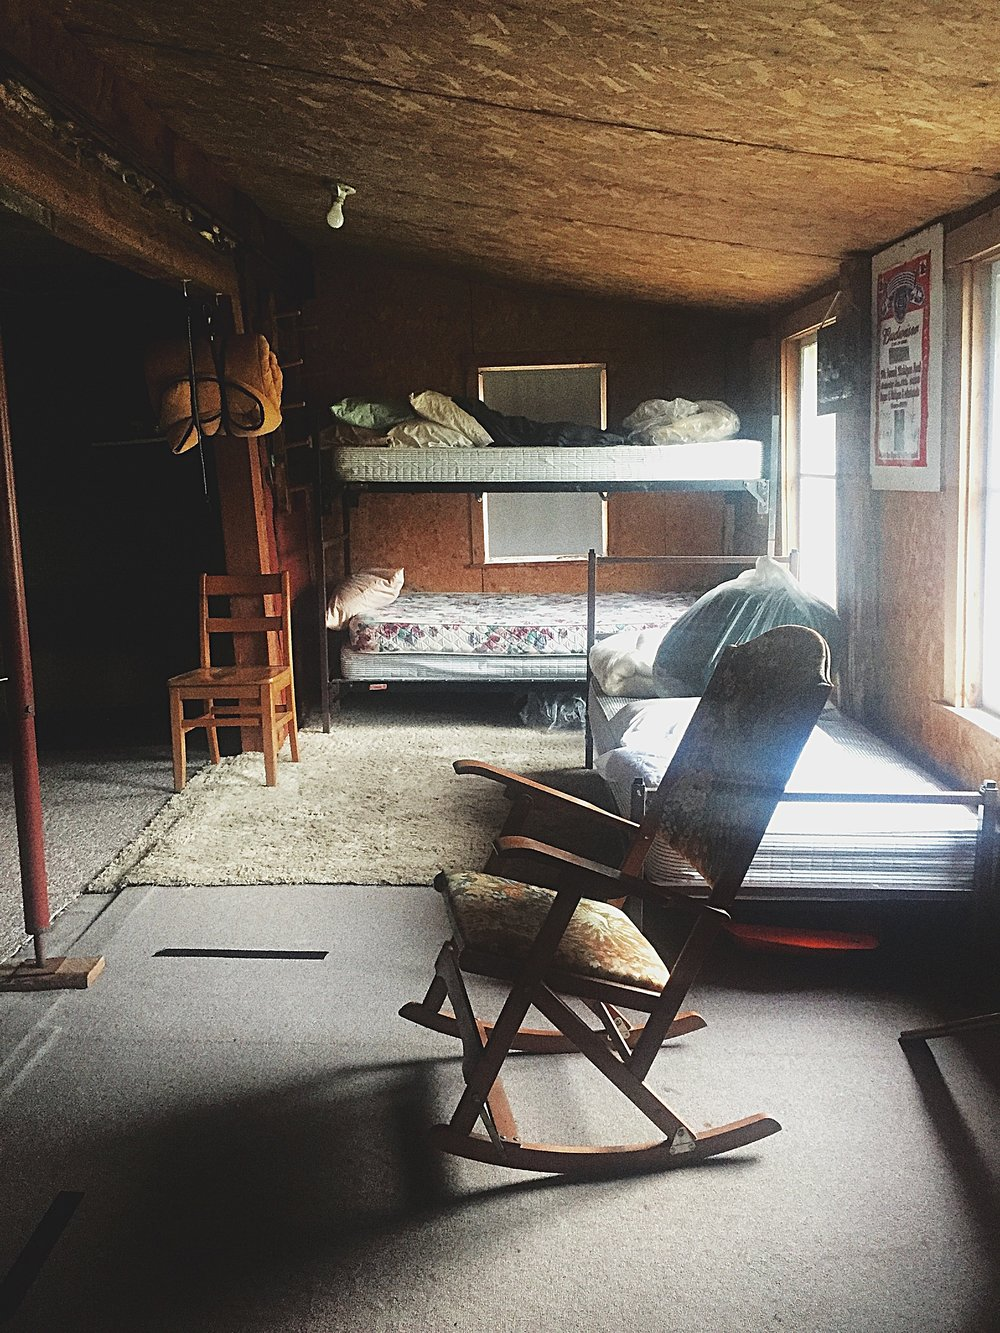 An inside-look of the Doll House in Owls Head, N.Y., one of the many cabins David Sweat and Richard Matt raided while on the run.  (Chelsia Rose Marcius/Oct. 16, 2016)